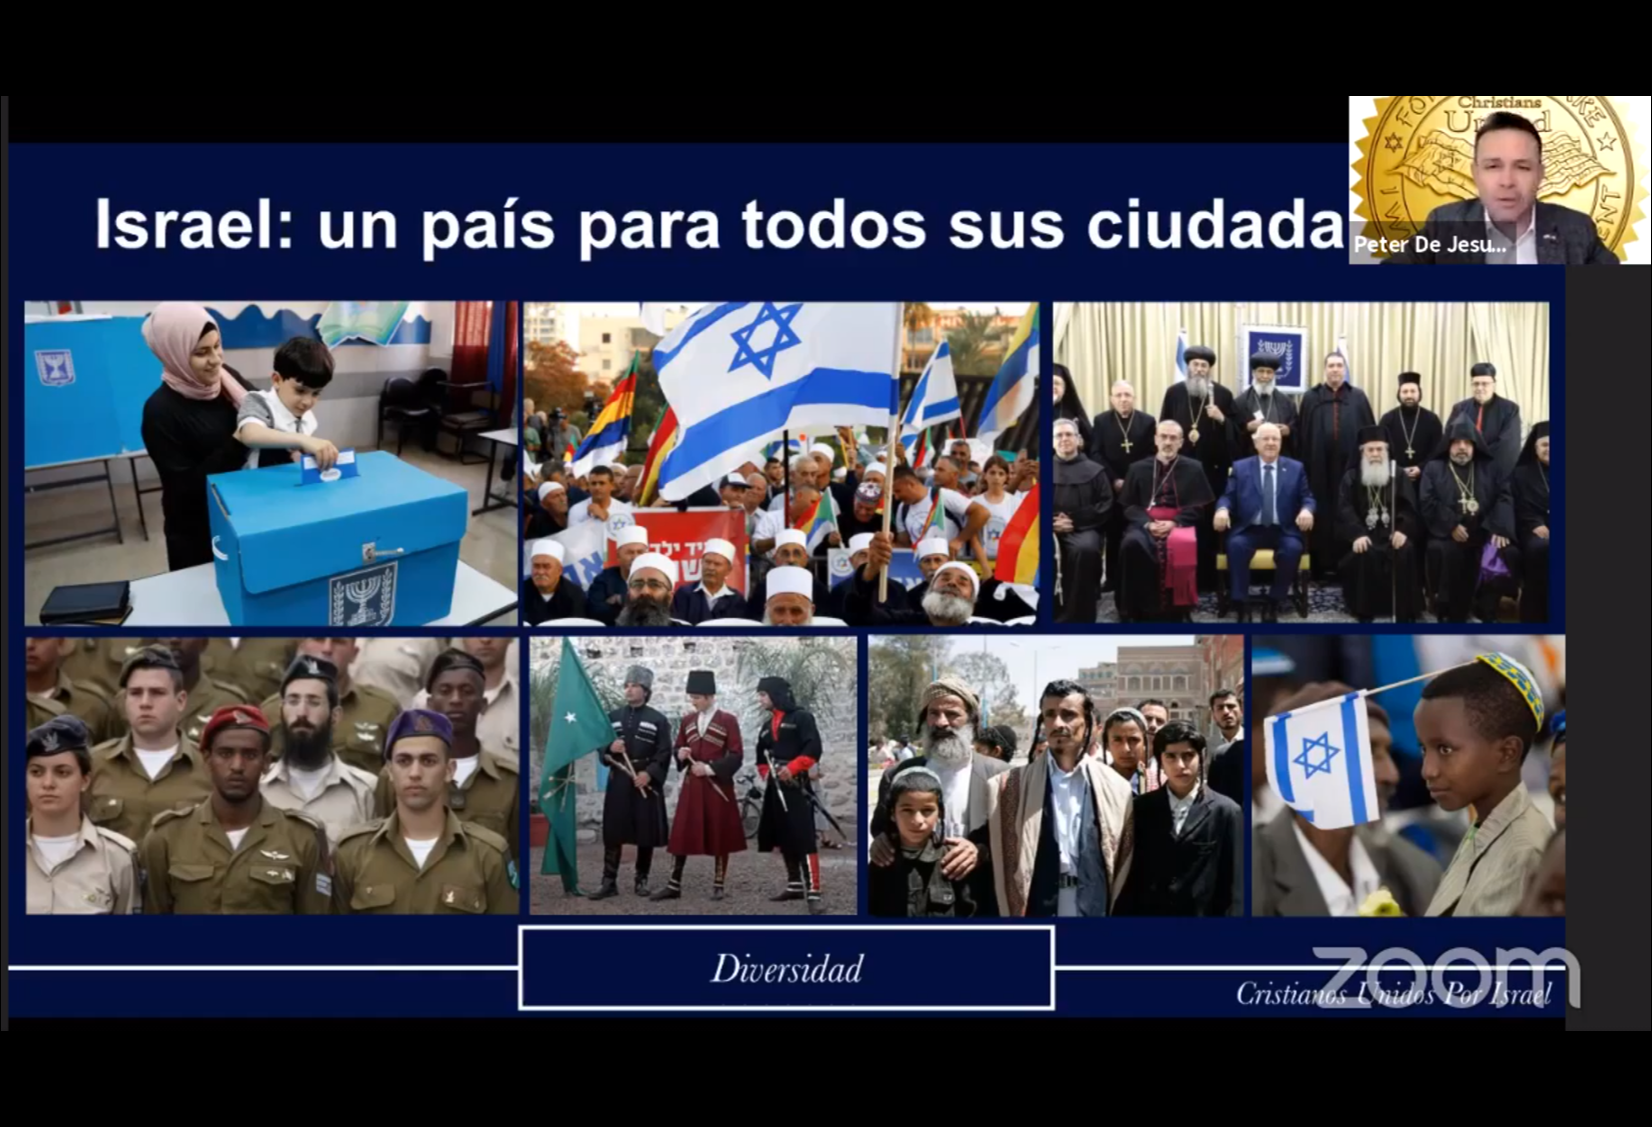 November 28 - Spanish Why Israel?